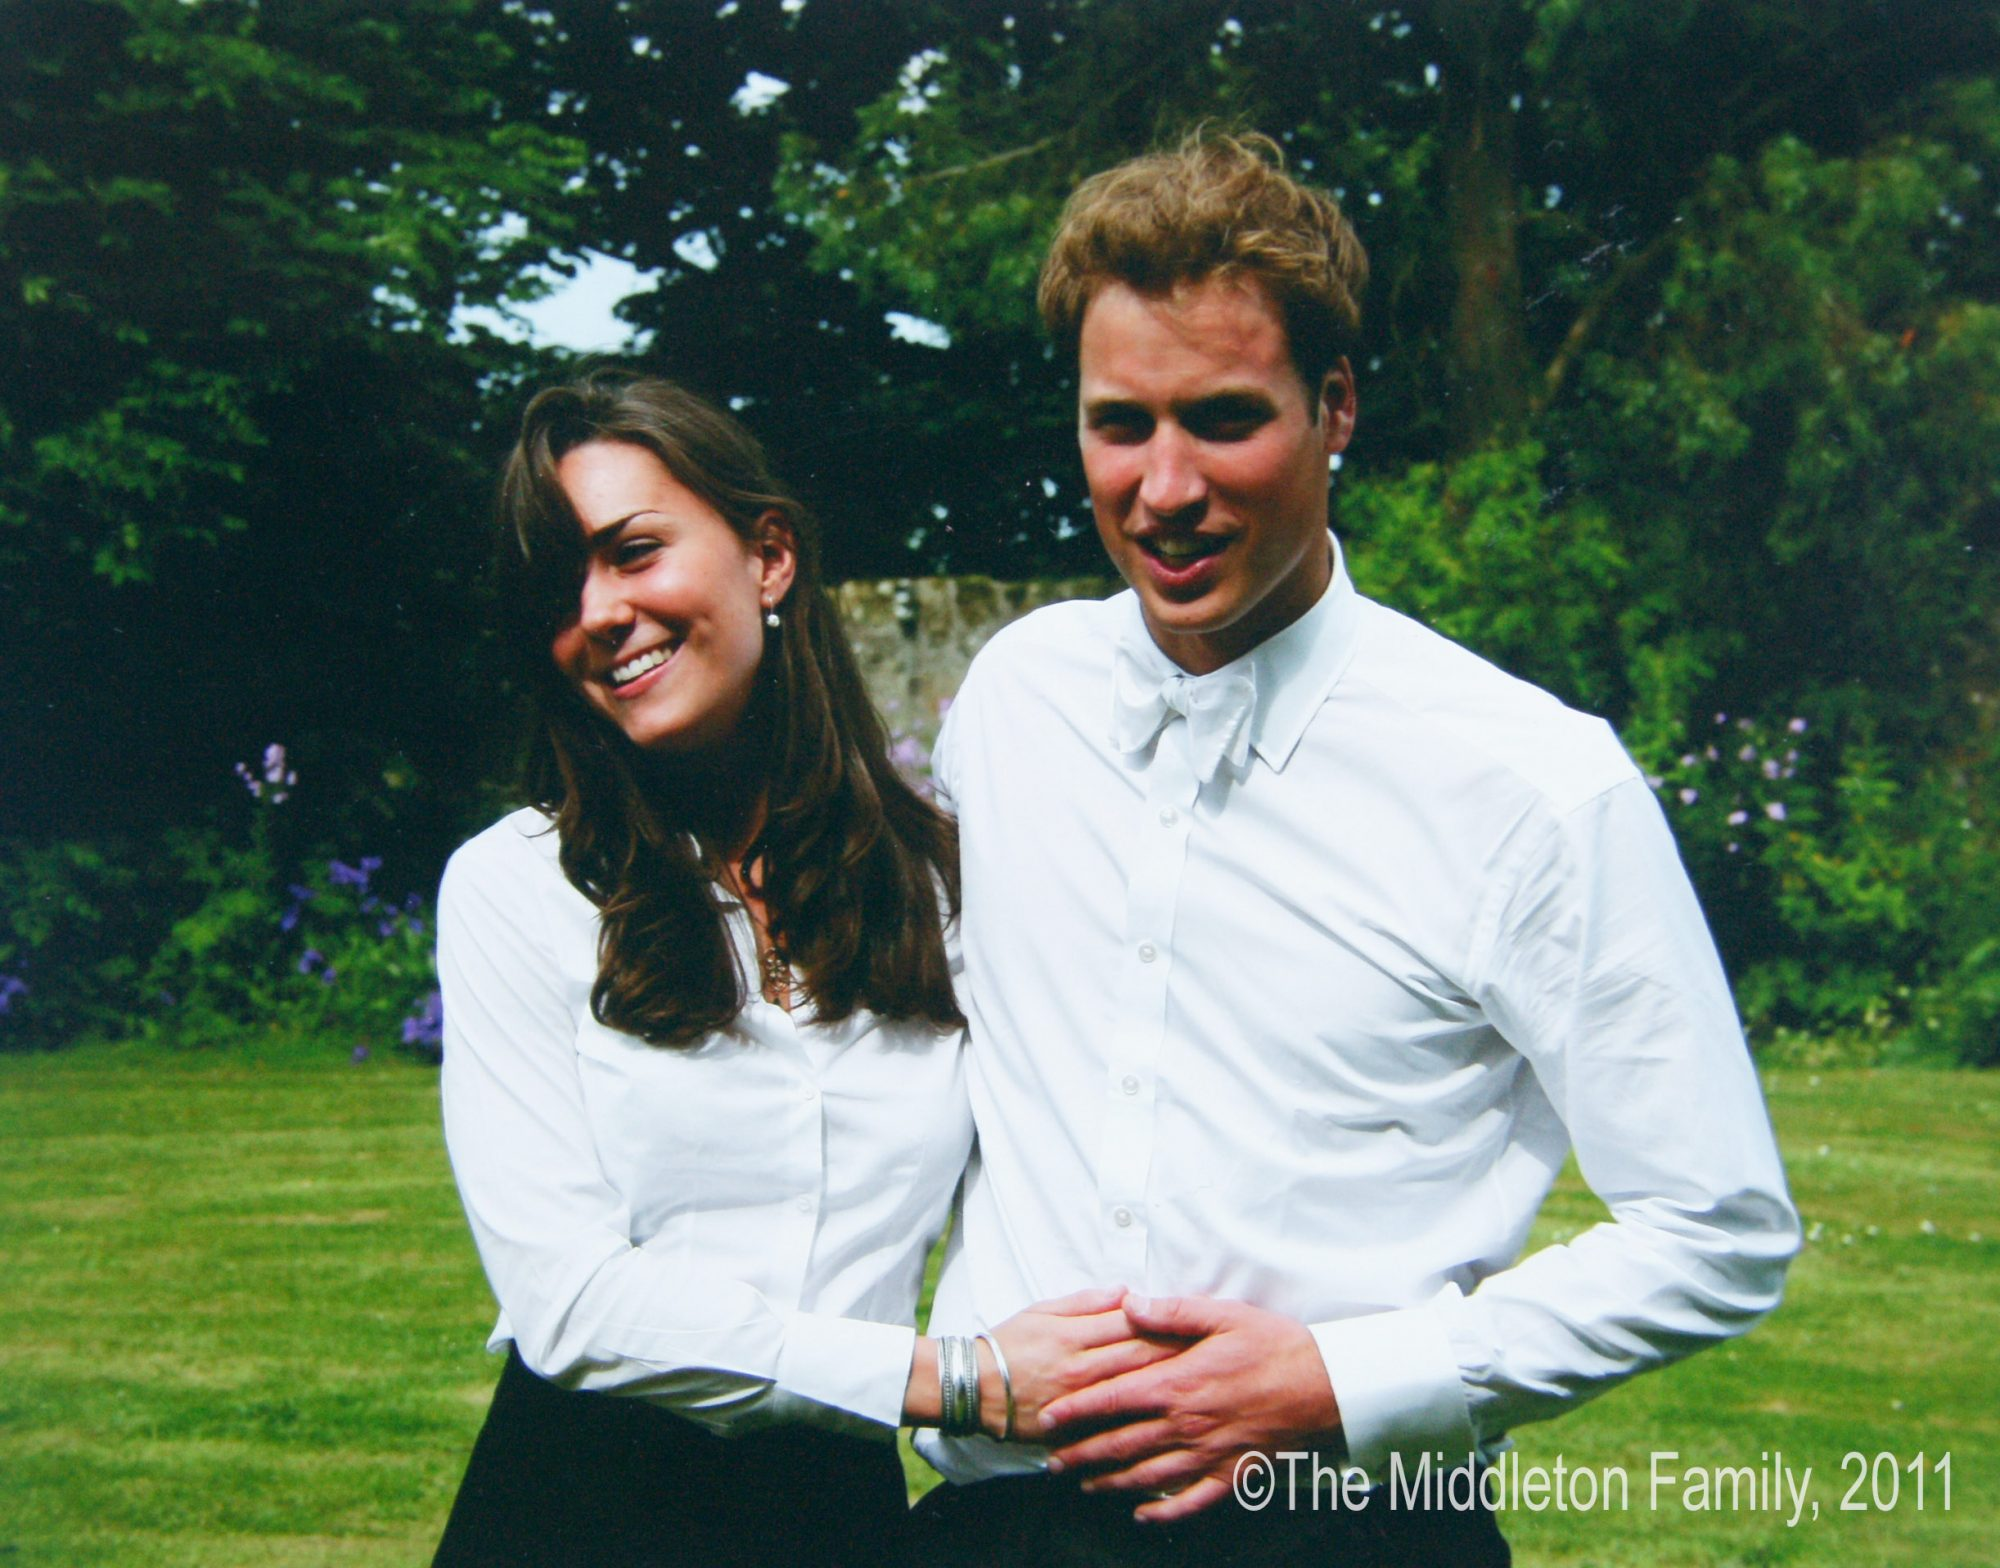 Prince William and Kate Middleton on their graduation day